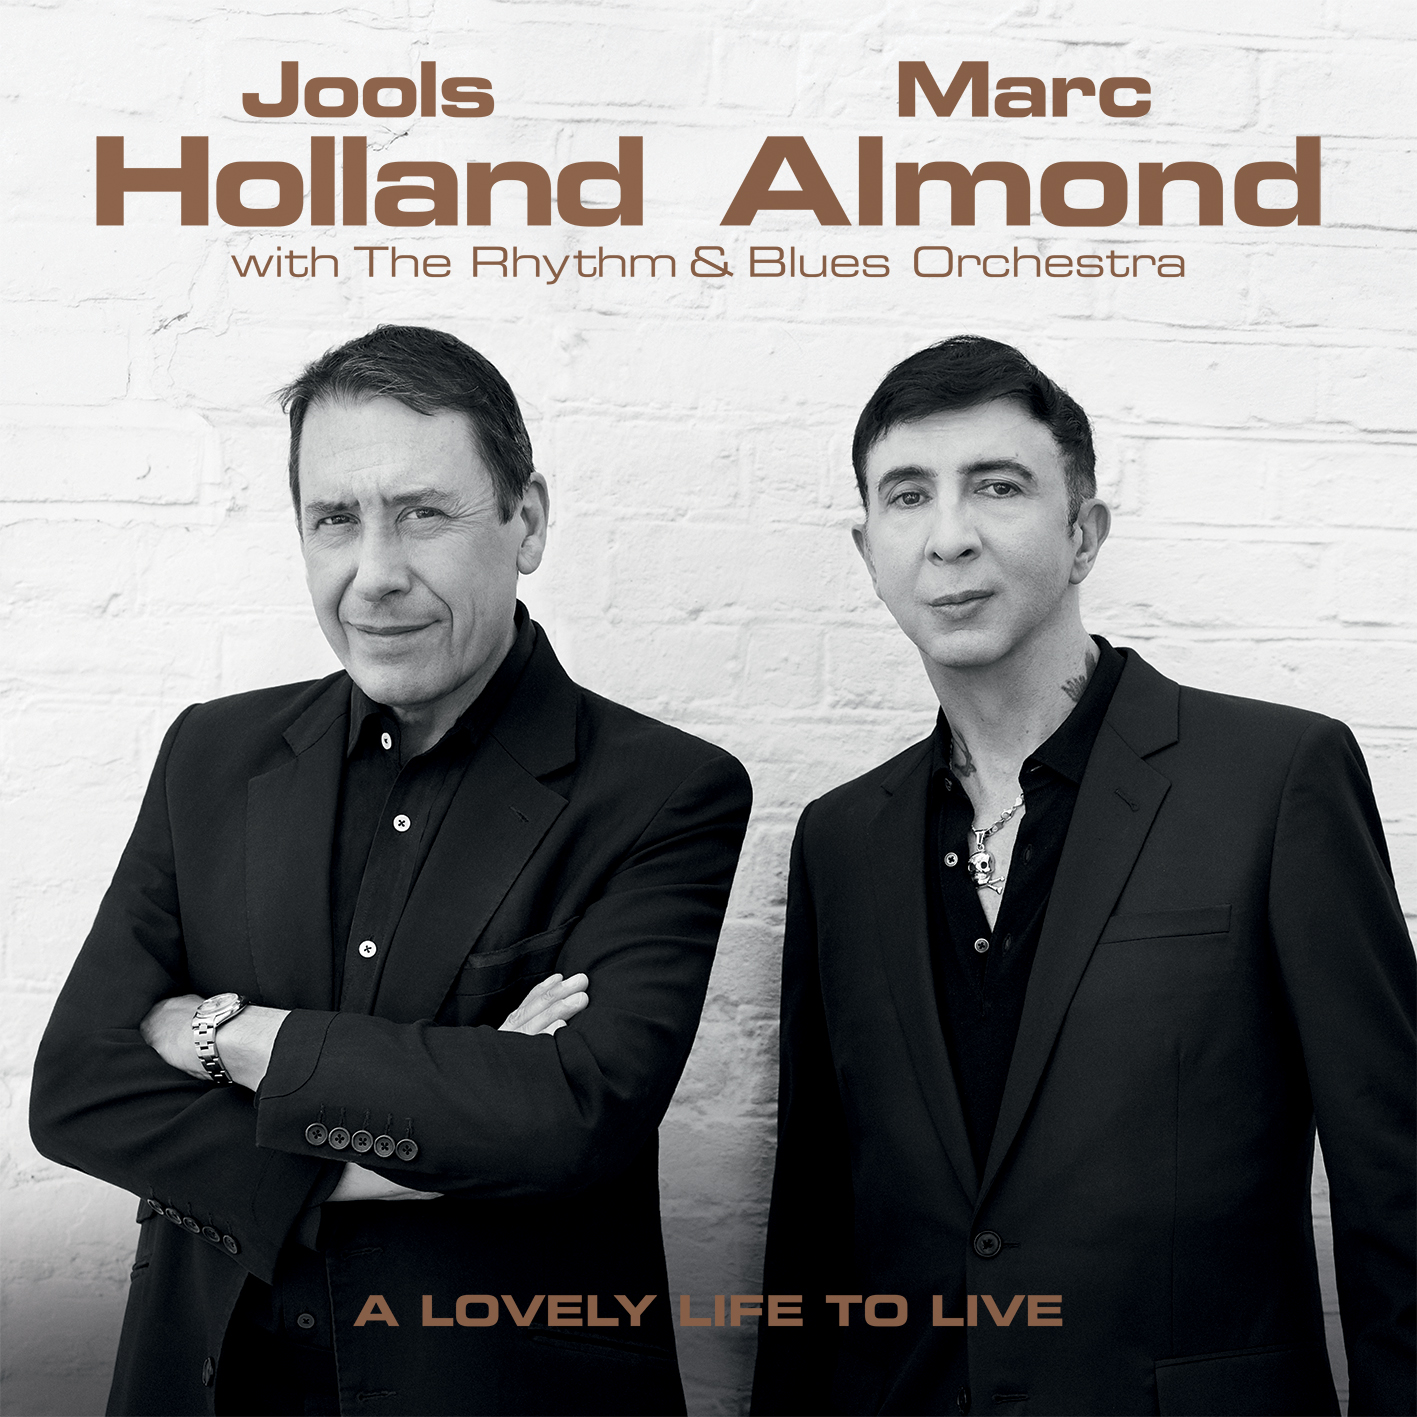 Jools Holland and Marc Almond's new album